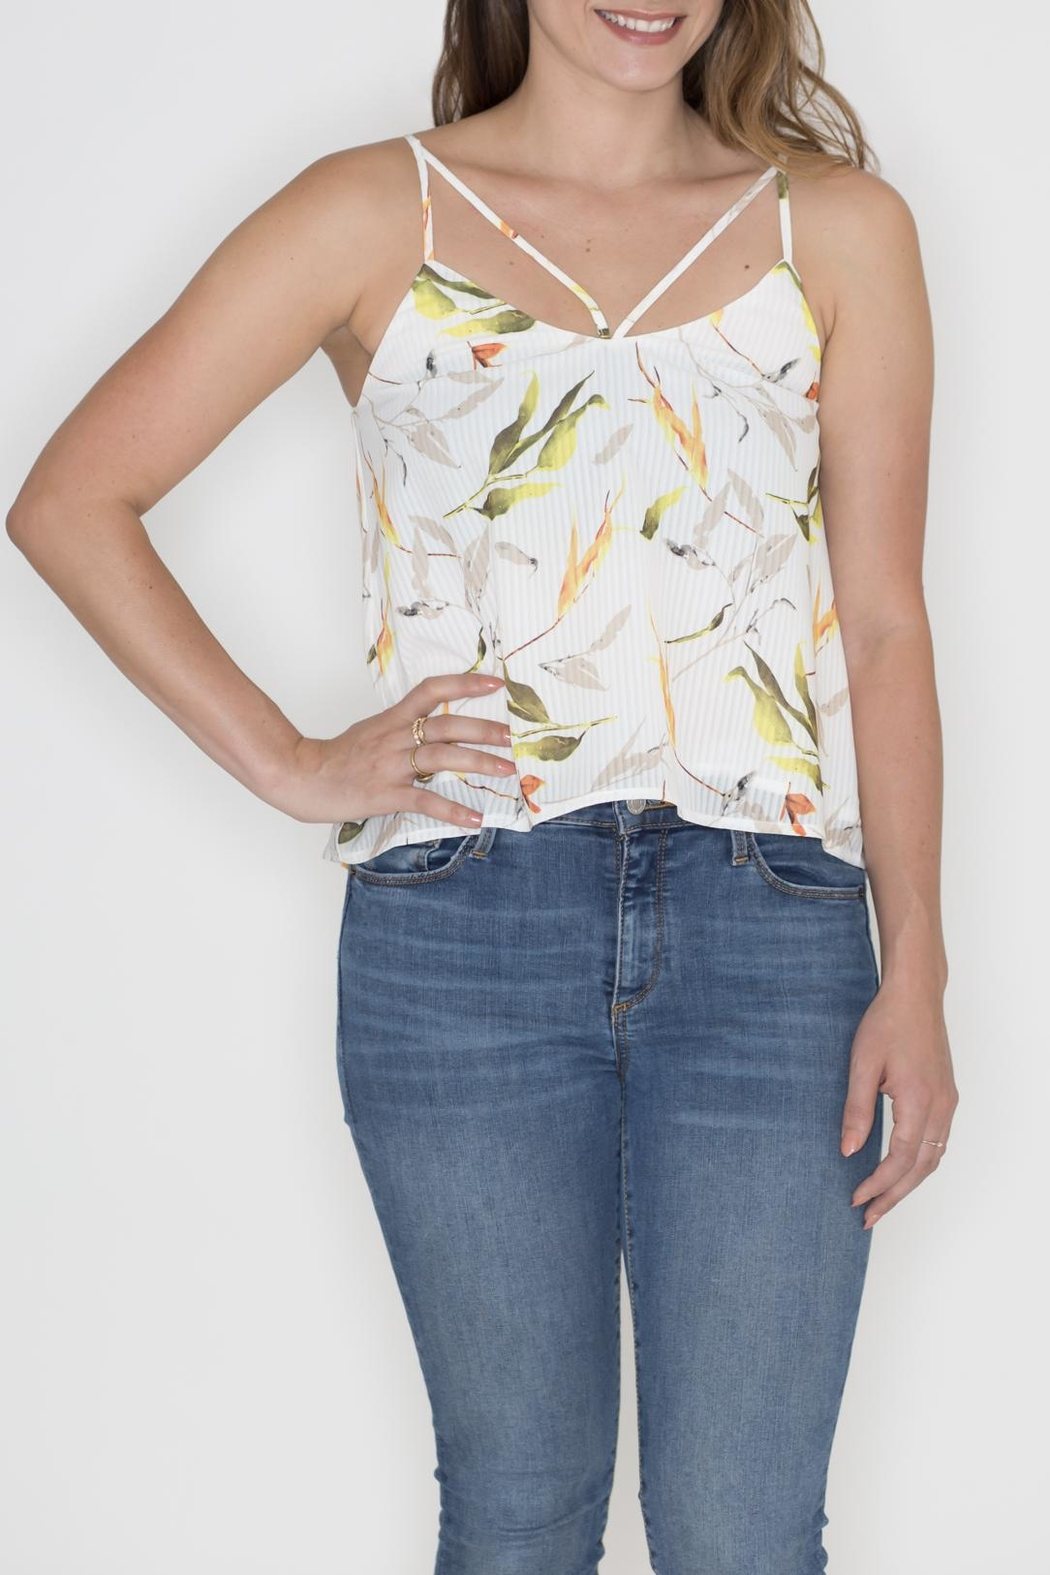 Hommage Floral Cami Top - Main Image